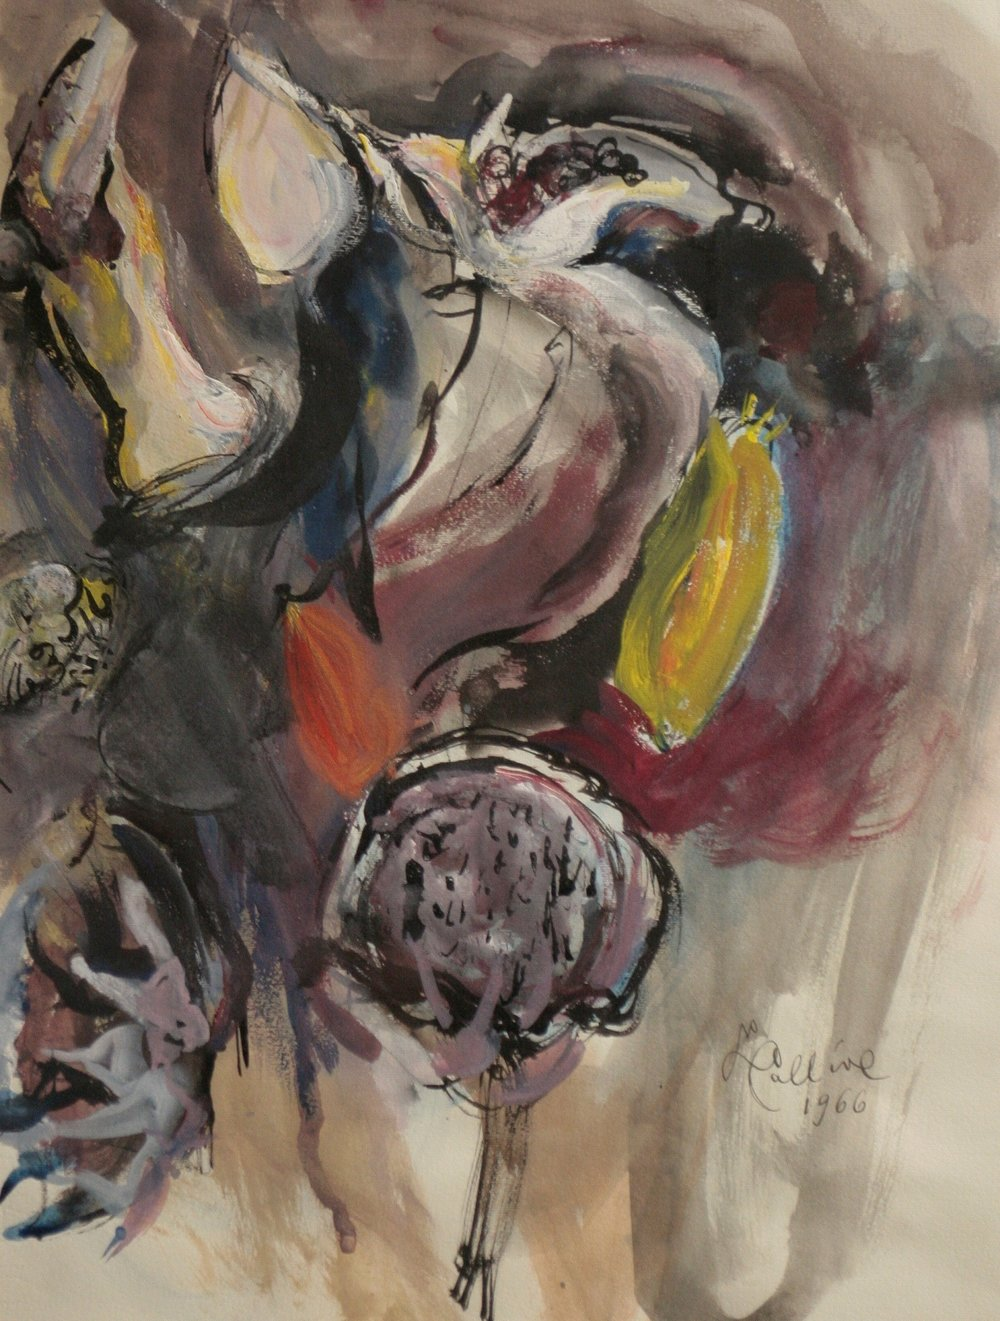 Lea Colliva, Tempera on paper, mid-1960s